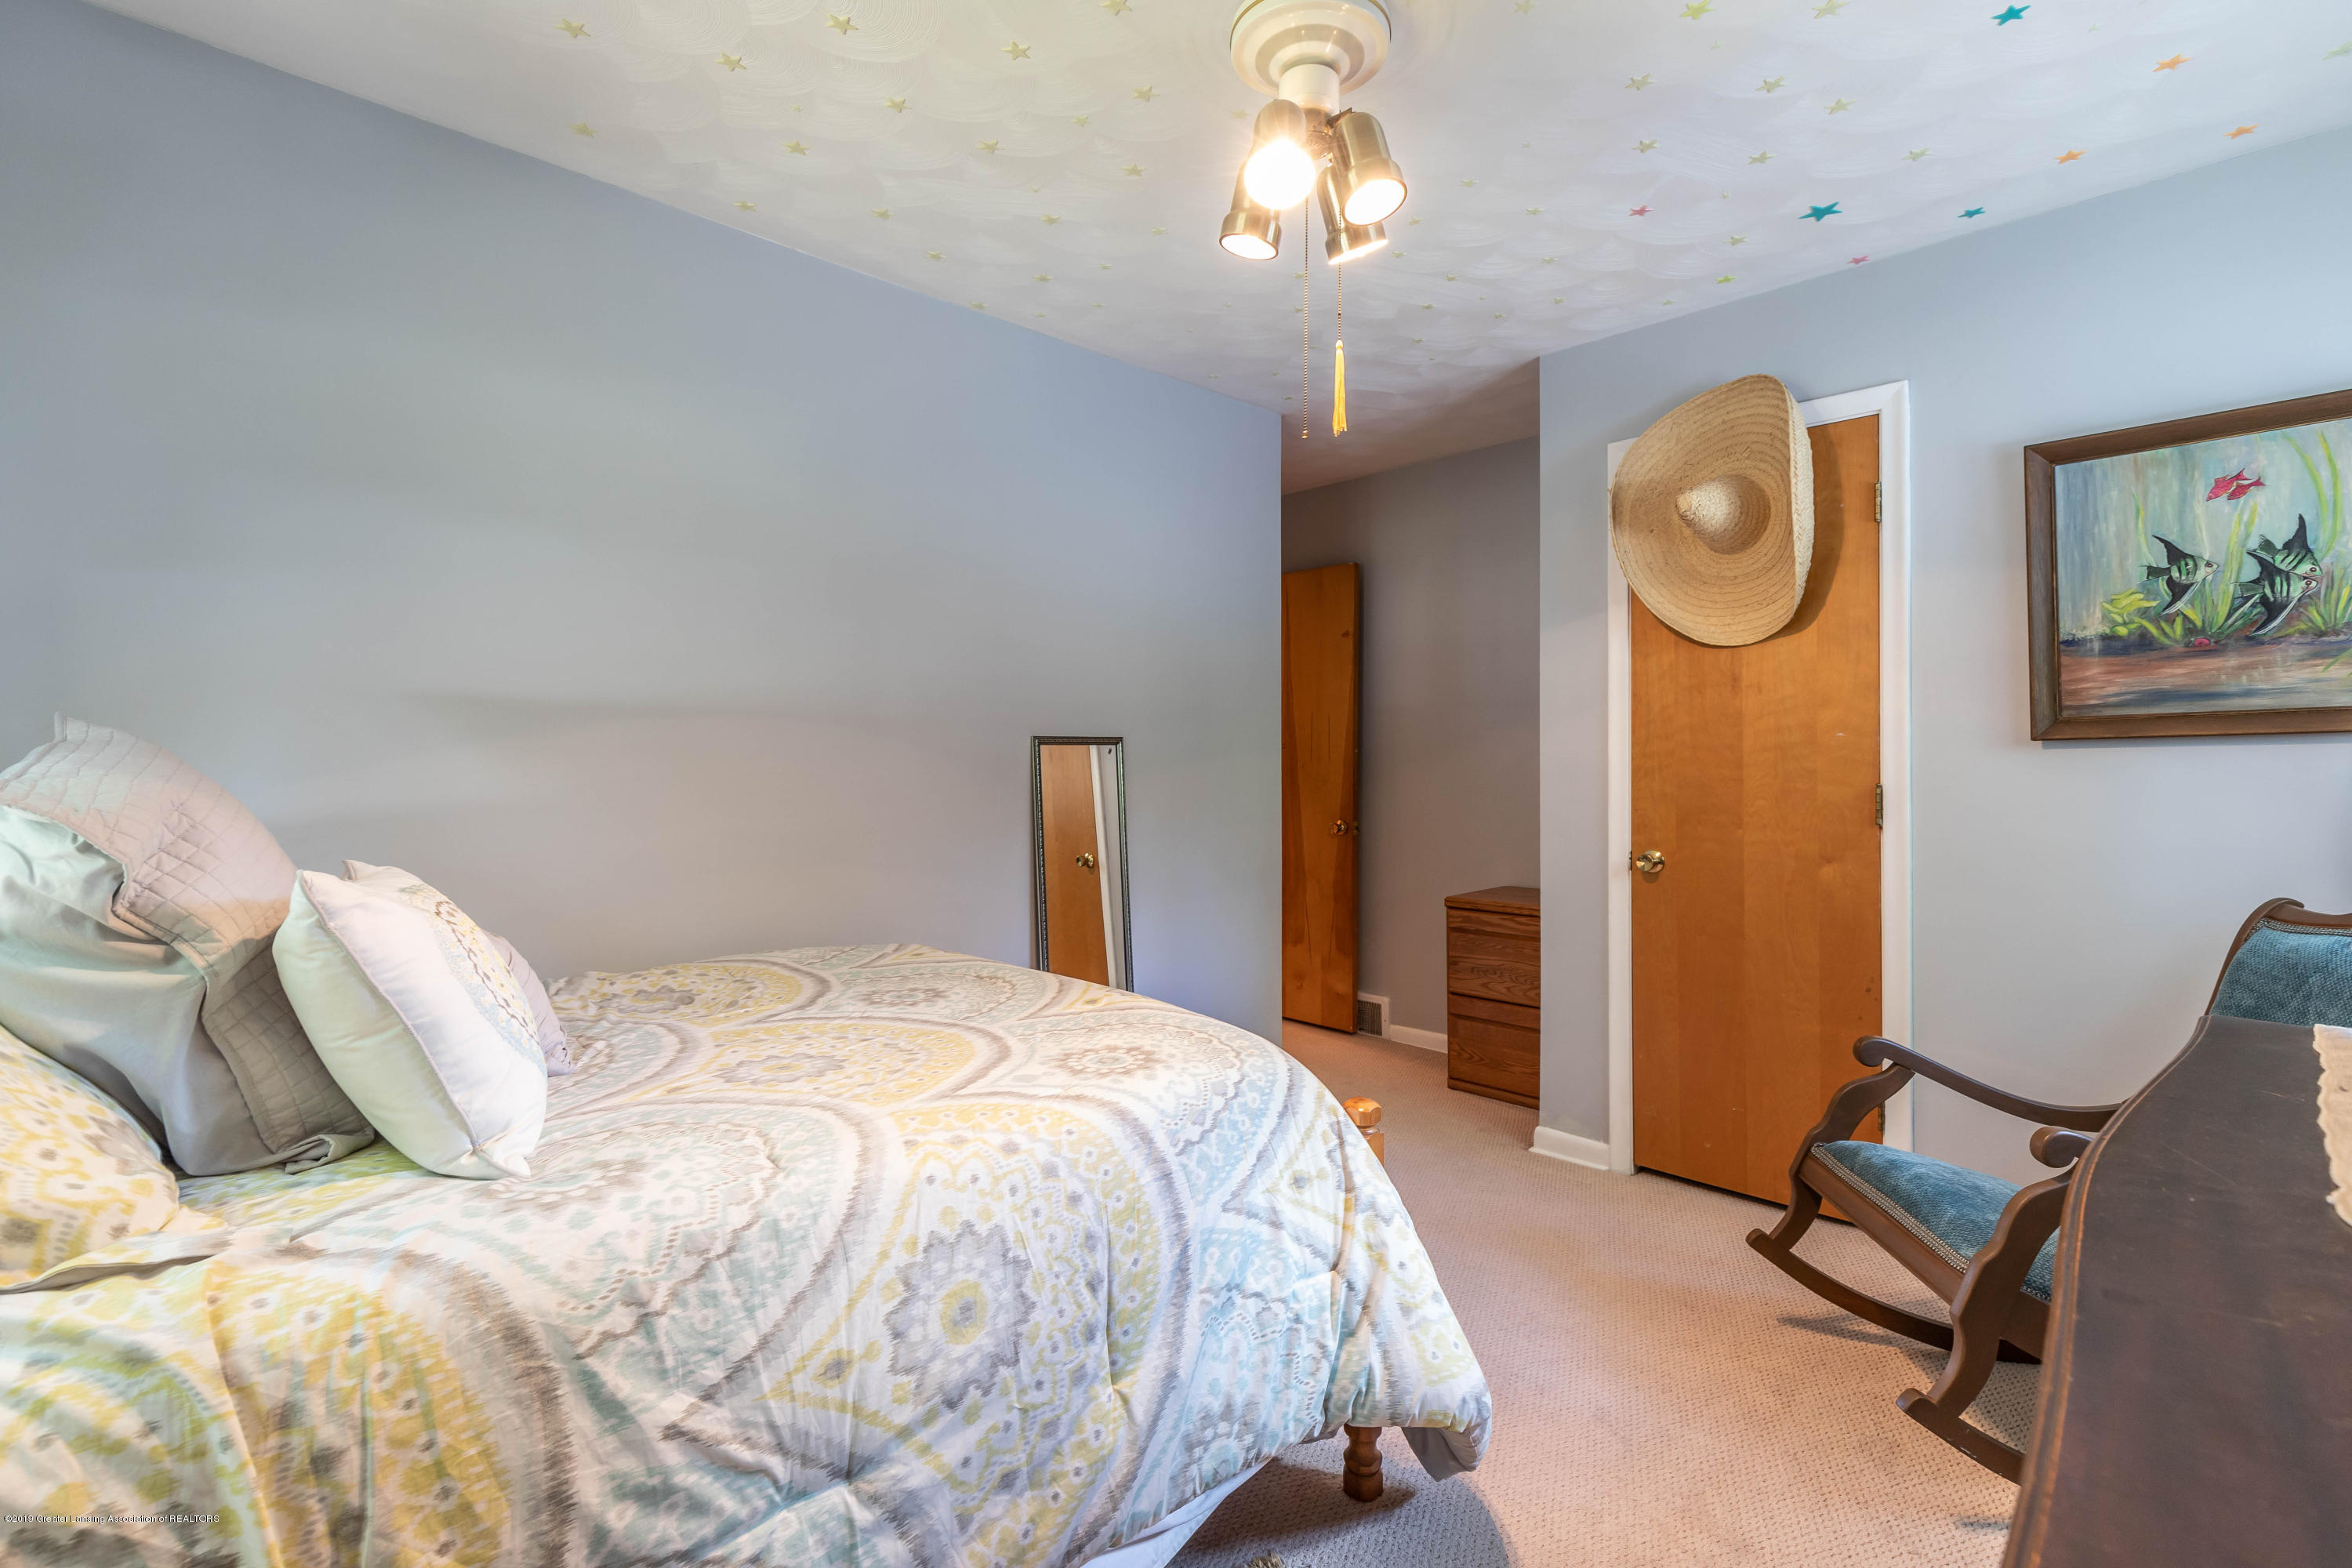 4913 Sugarbush Ln - Bedroom - 23